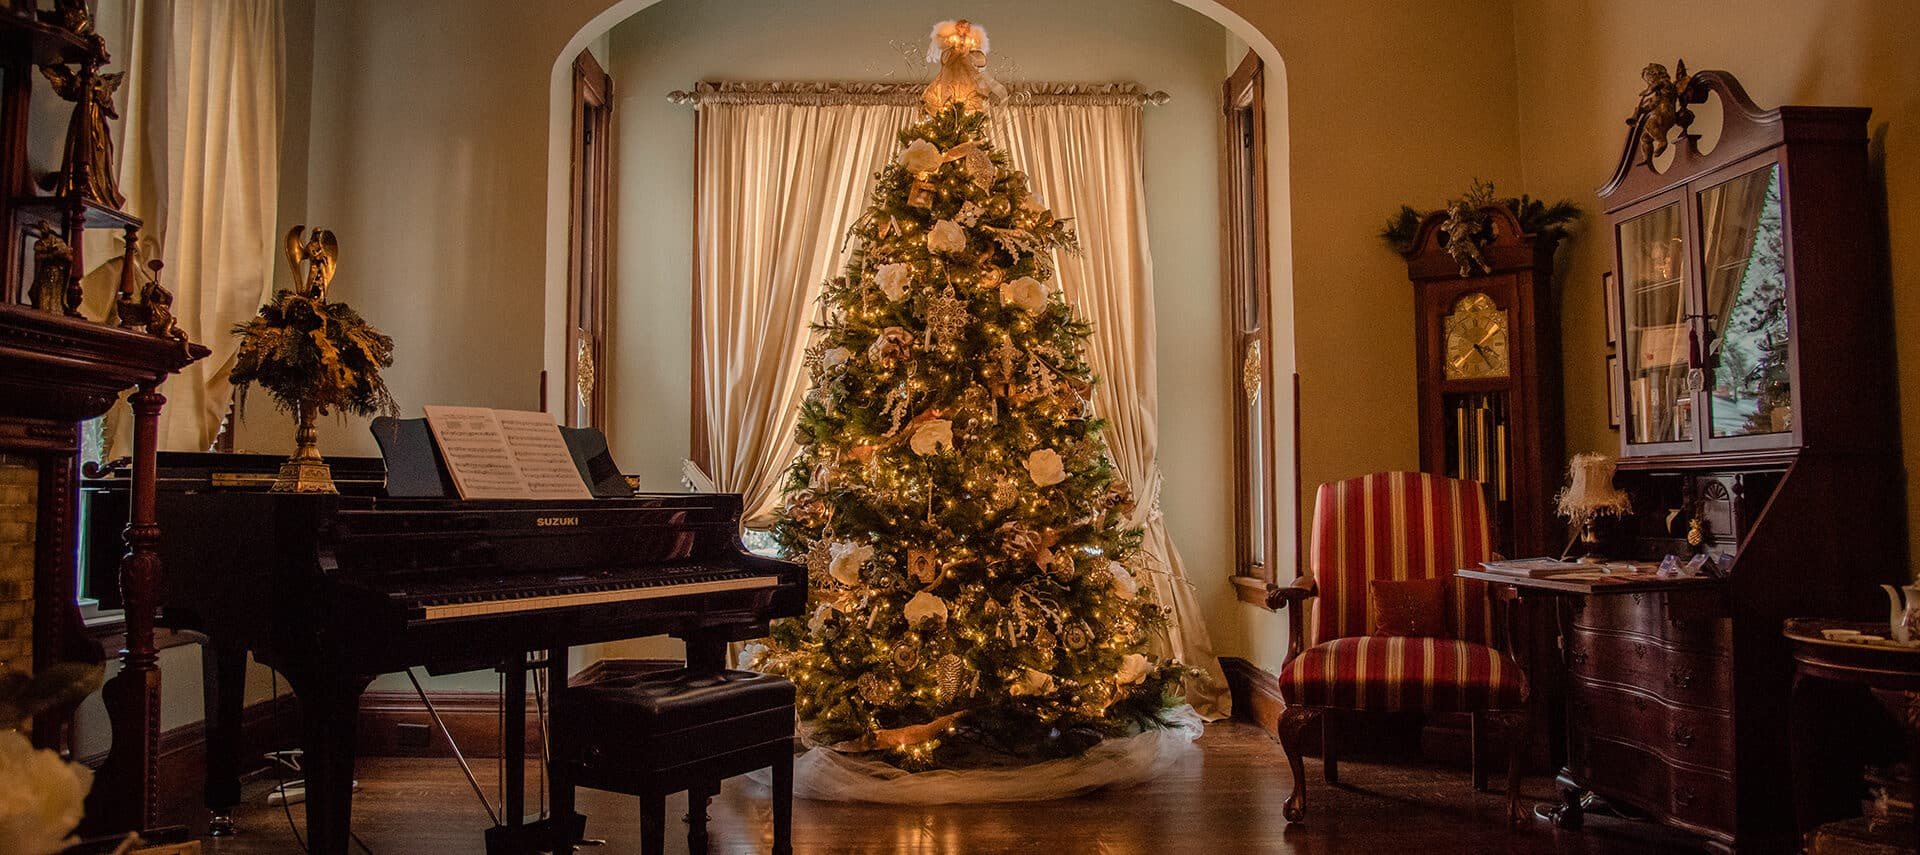 baby grand piano and gold trimmed Christmas tree